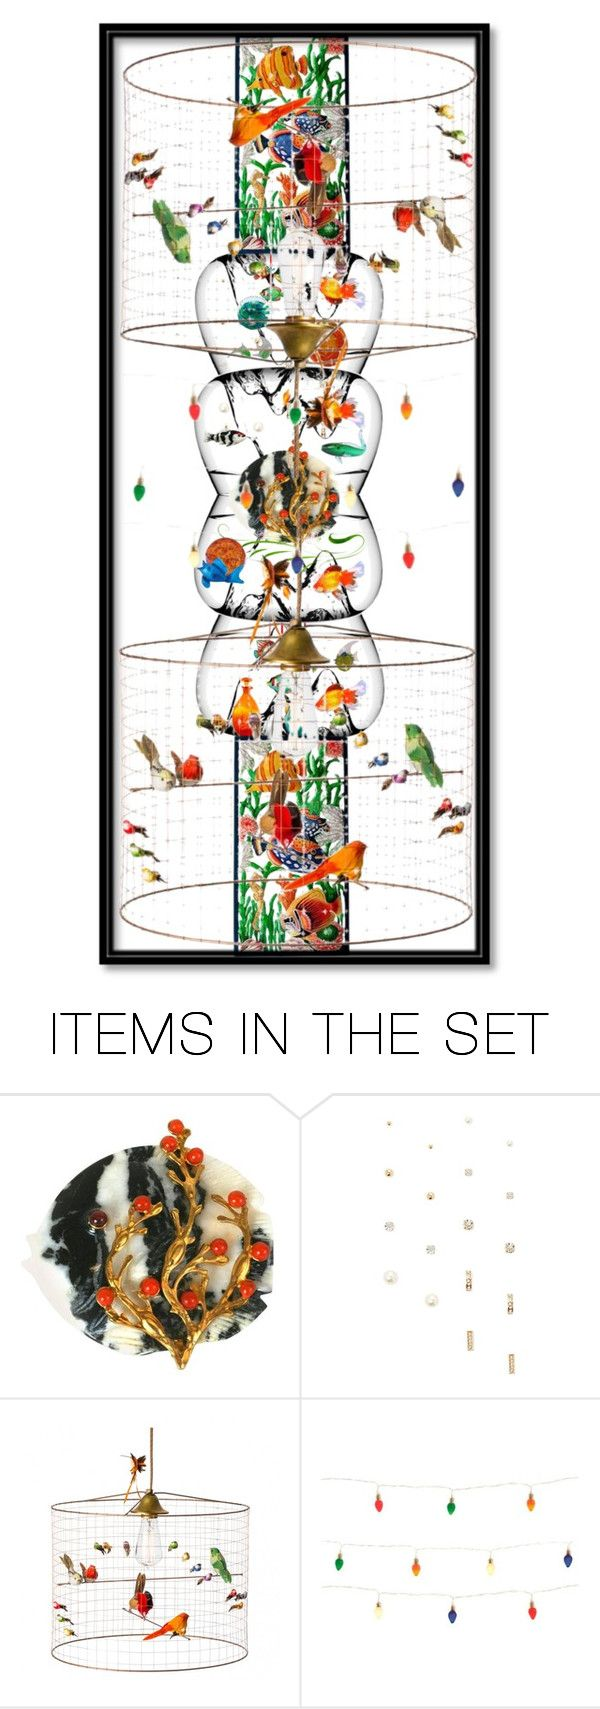 """7830 - Fish and Birds bookmark"" by suburbhater ❤ liked on Polyvore featuring art"